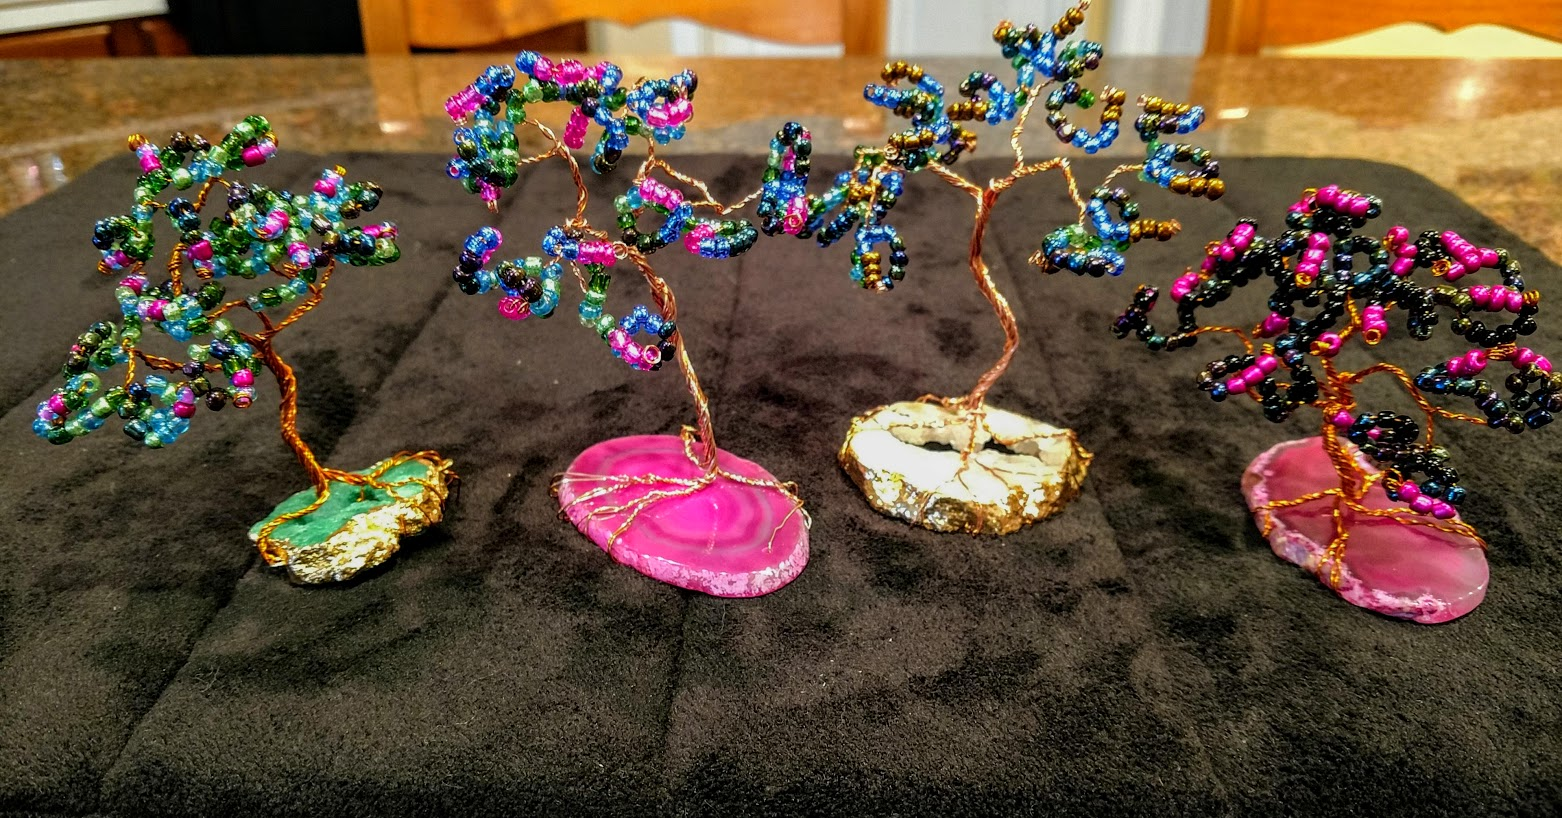 glass beading tree workshop on agates and Geodes* - LEARN copper wire twisting, beading techniques.